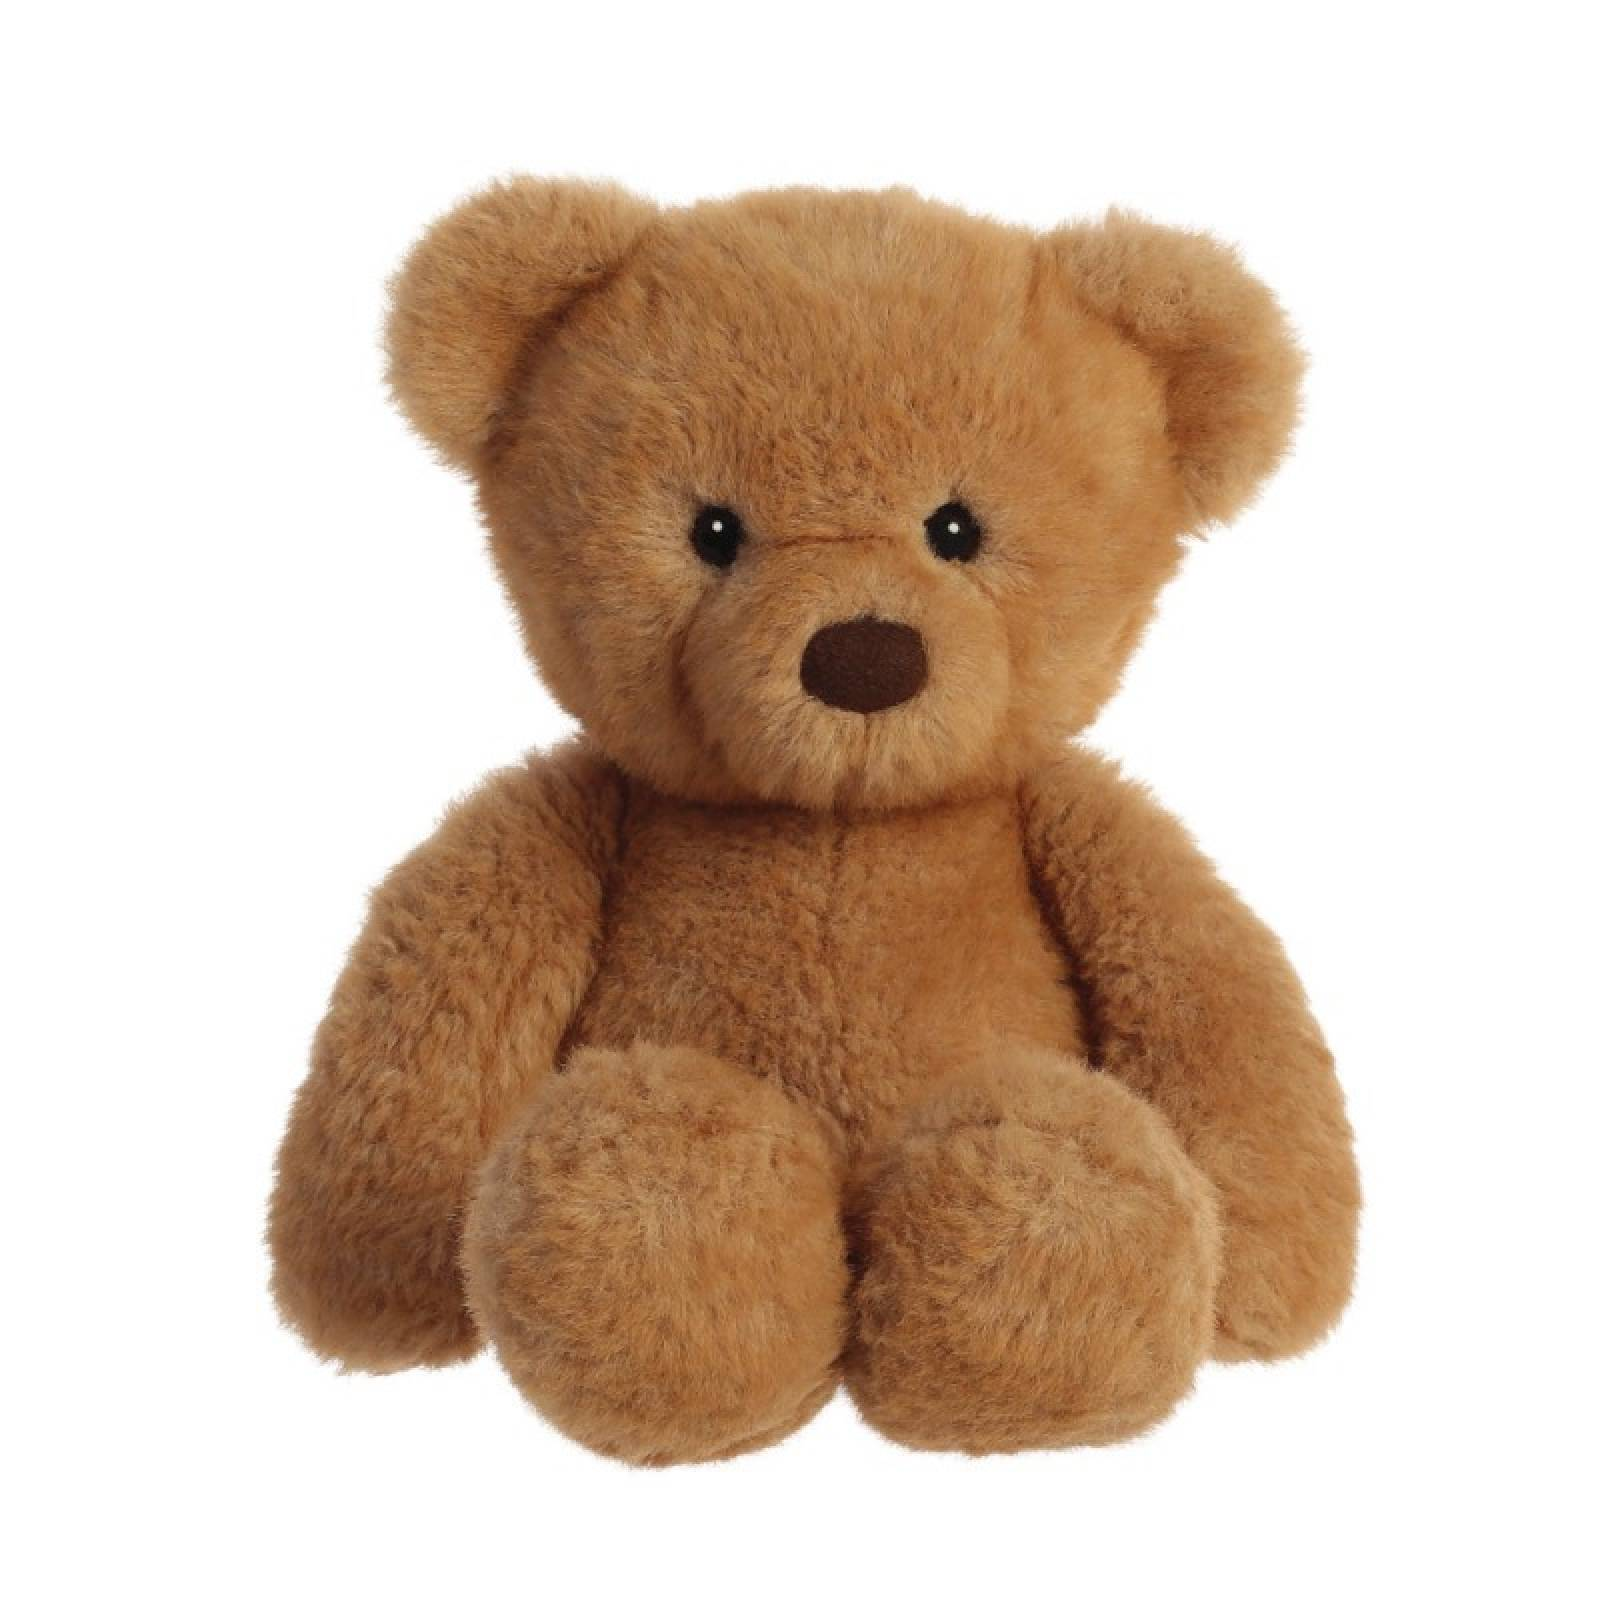 Archie The Teddy Bear Soft Toy 0+ thumbnails